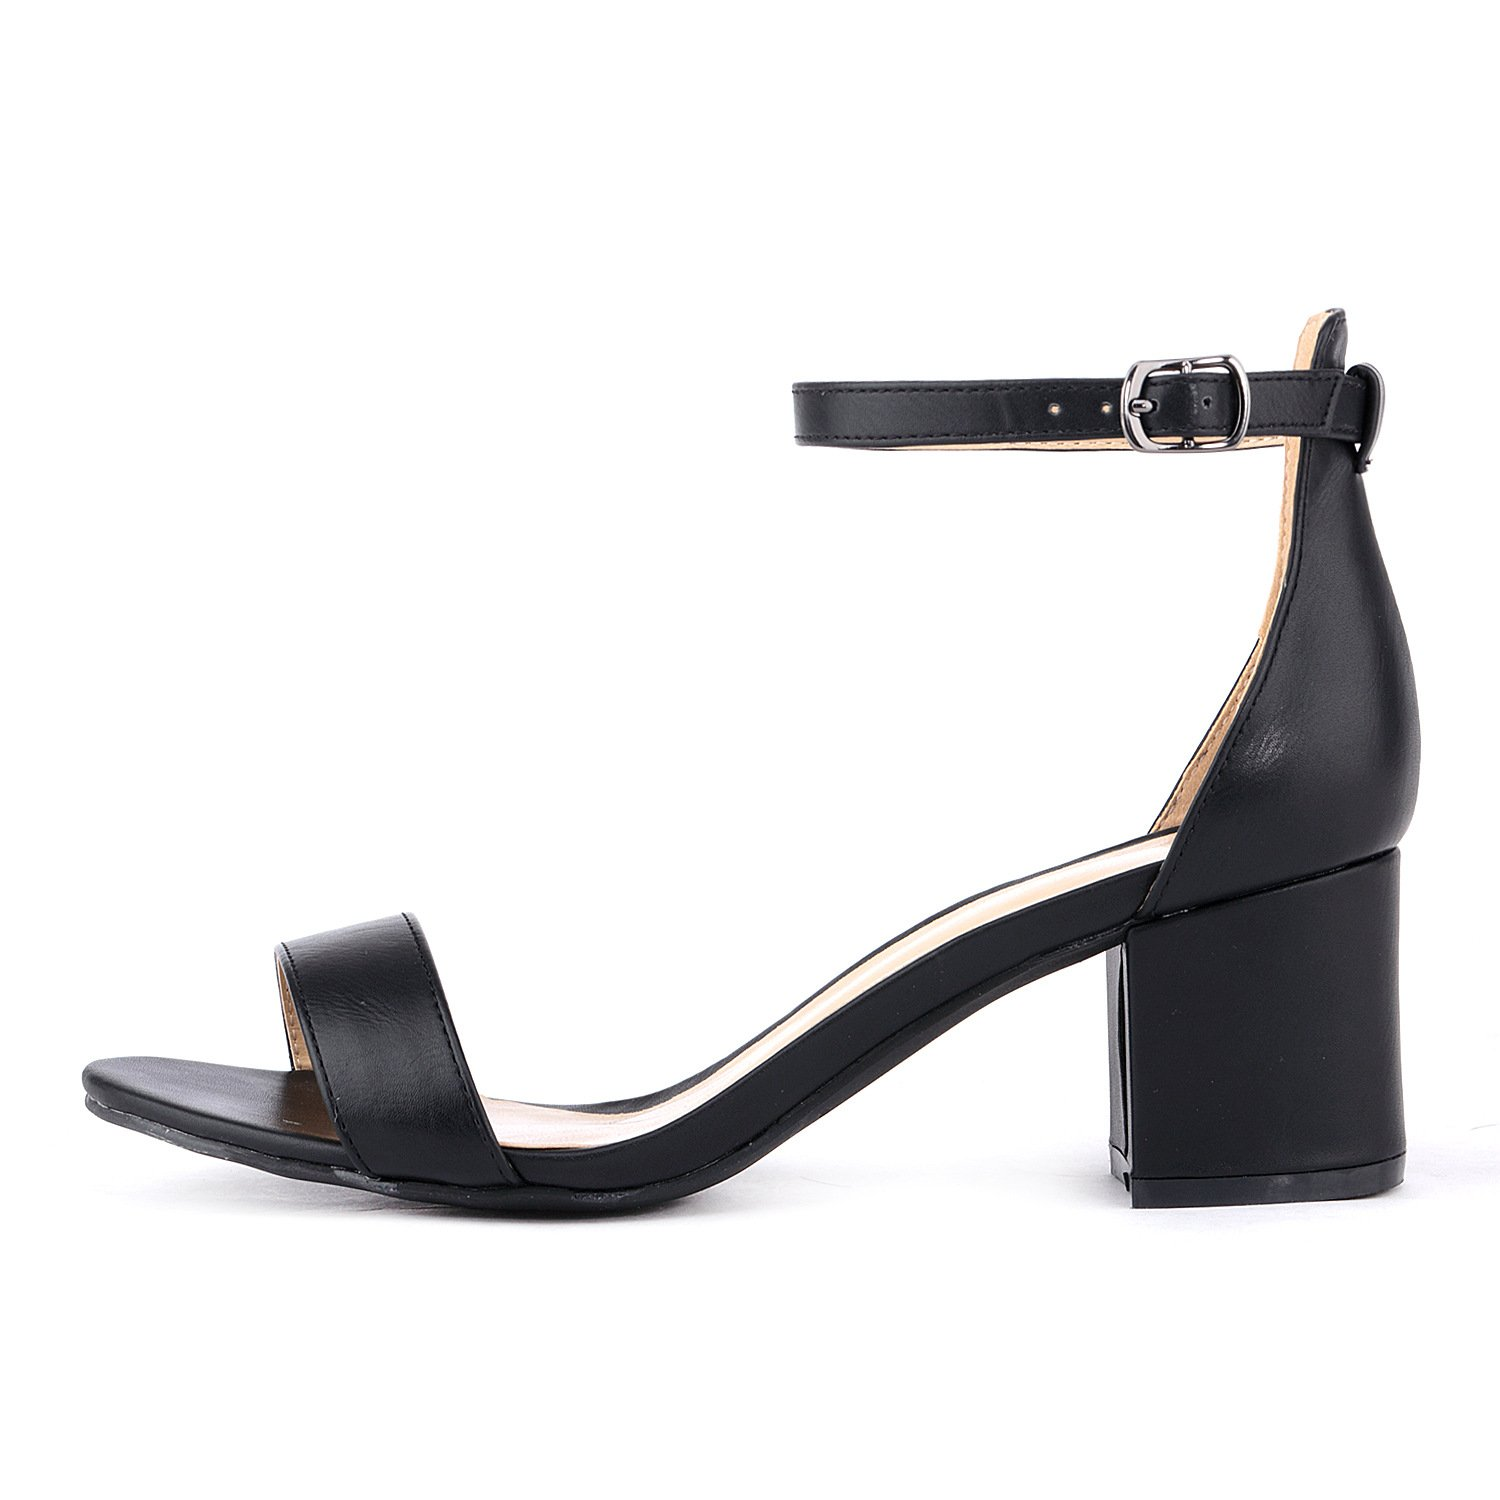 b79b7624c2b Women's Strappy Chunky Block Low Heeled Sandals 2 Inch Open Toe Ankle Strap  High Heel Dress Sandals Daily Work Party Shoes